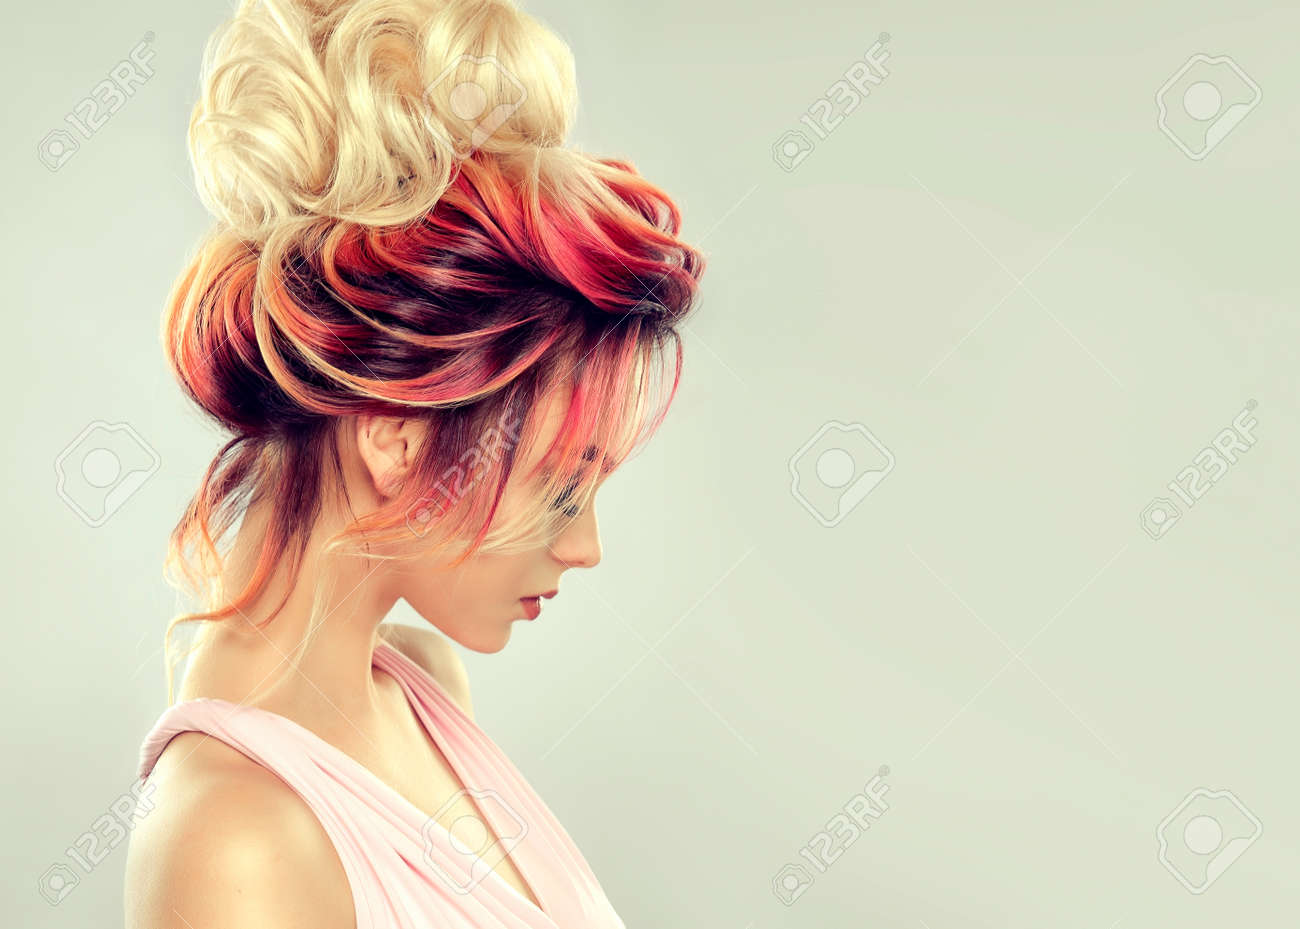 Young attractive woman is demonstrating multi colored hair gathered in elegant evening or wedding hairstyle. Hairdressing art and coloration of hair. Portrait in profile. - 121942061